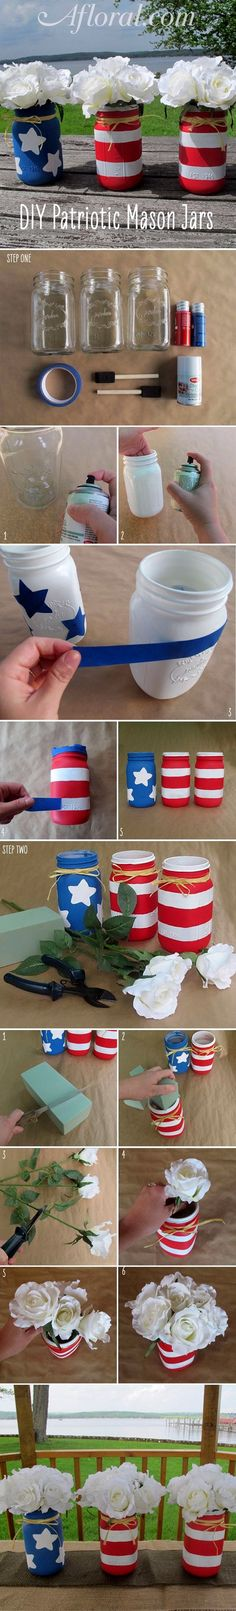 <3 Fourth of July Crafts for Parties <3 FOURTH OF JULY PARTY IDEAS <3 10 Enjoyable Fourth of July Party Ideas To Try In 2017